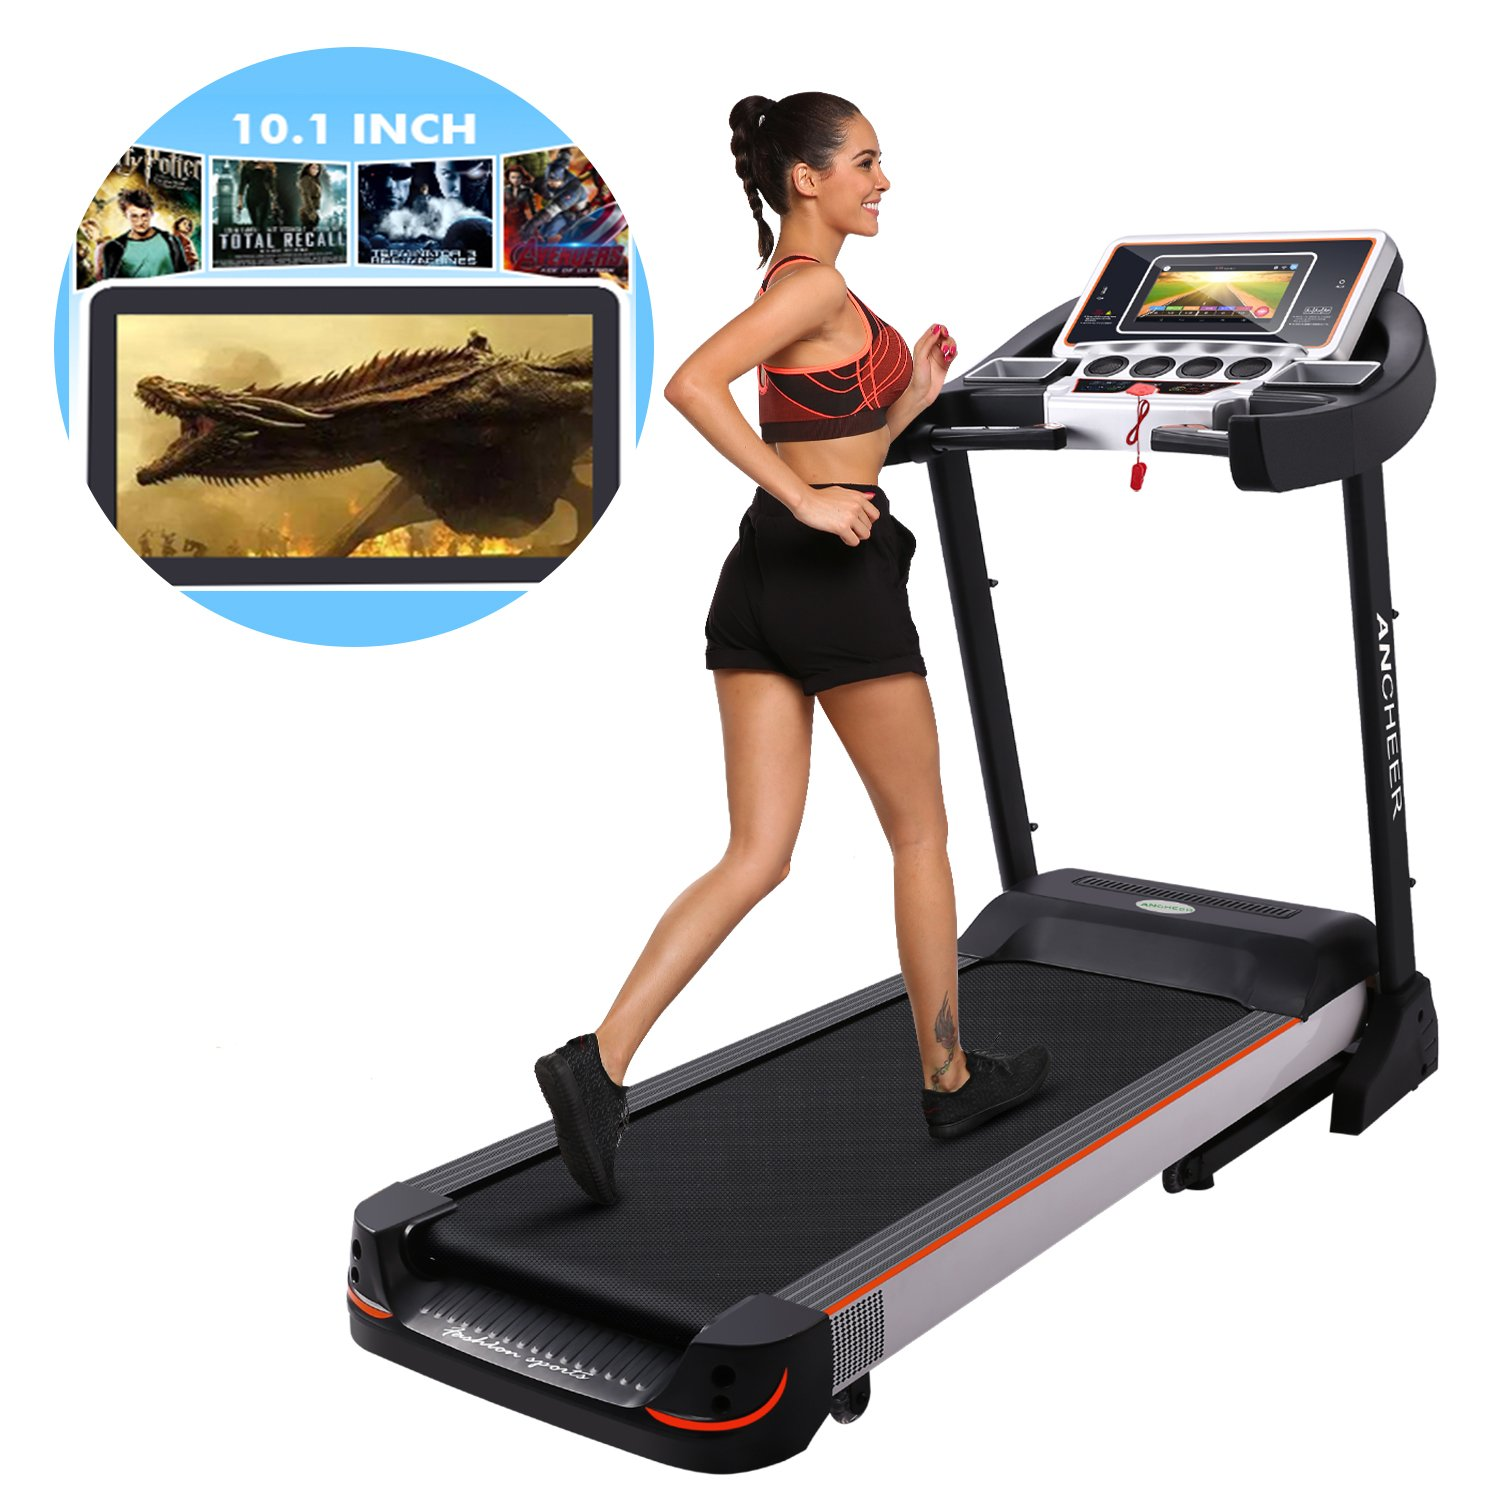 Brinymo Treadmill AP01 Treadmill – Second Largest Screen